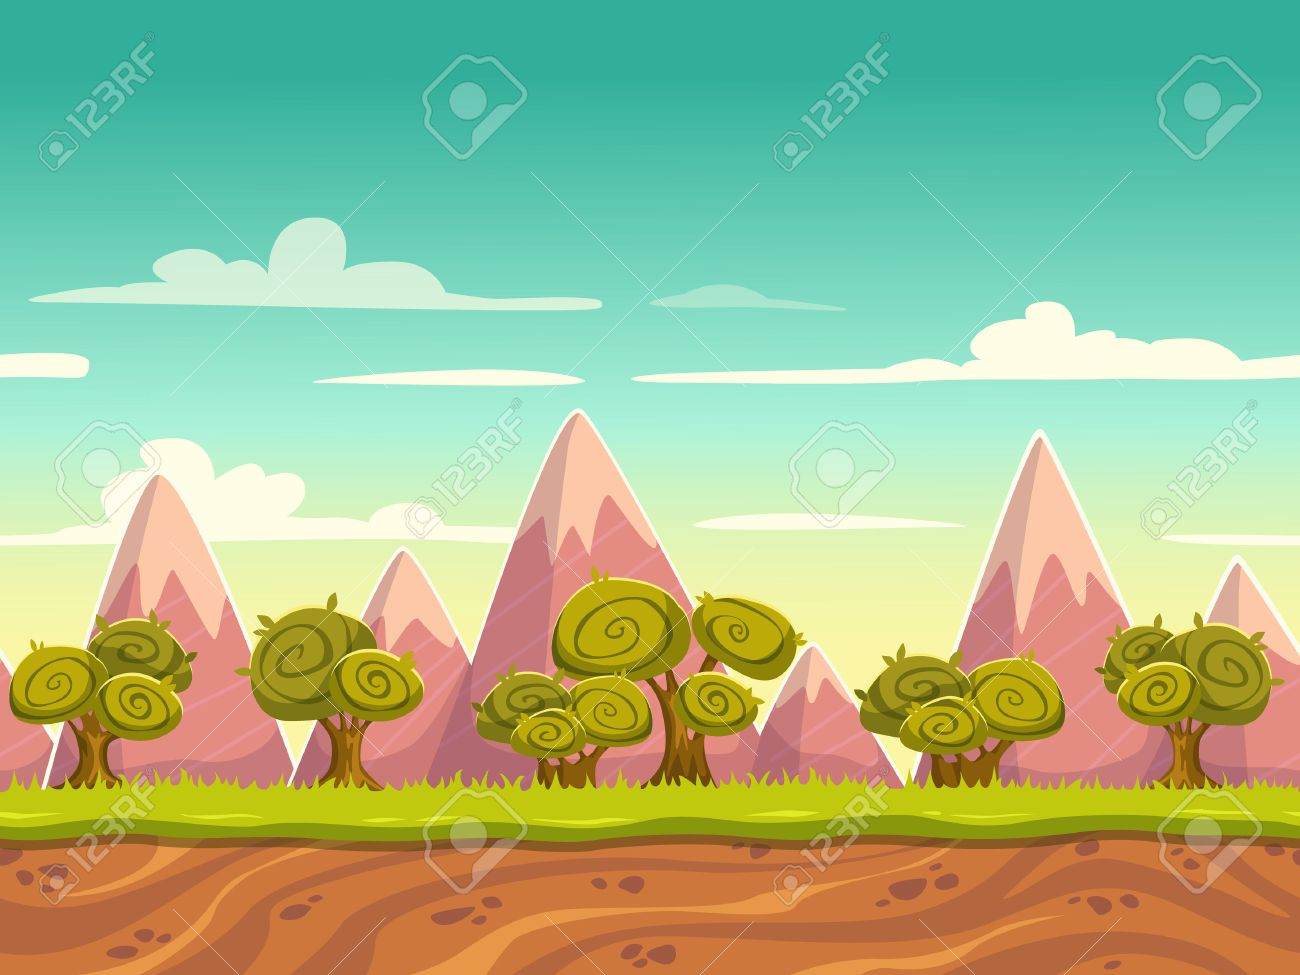 Seamless cartoon nature landscape, unending background with soil, trees, mountains and cloudy sky layers - 35949666